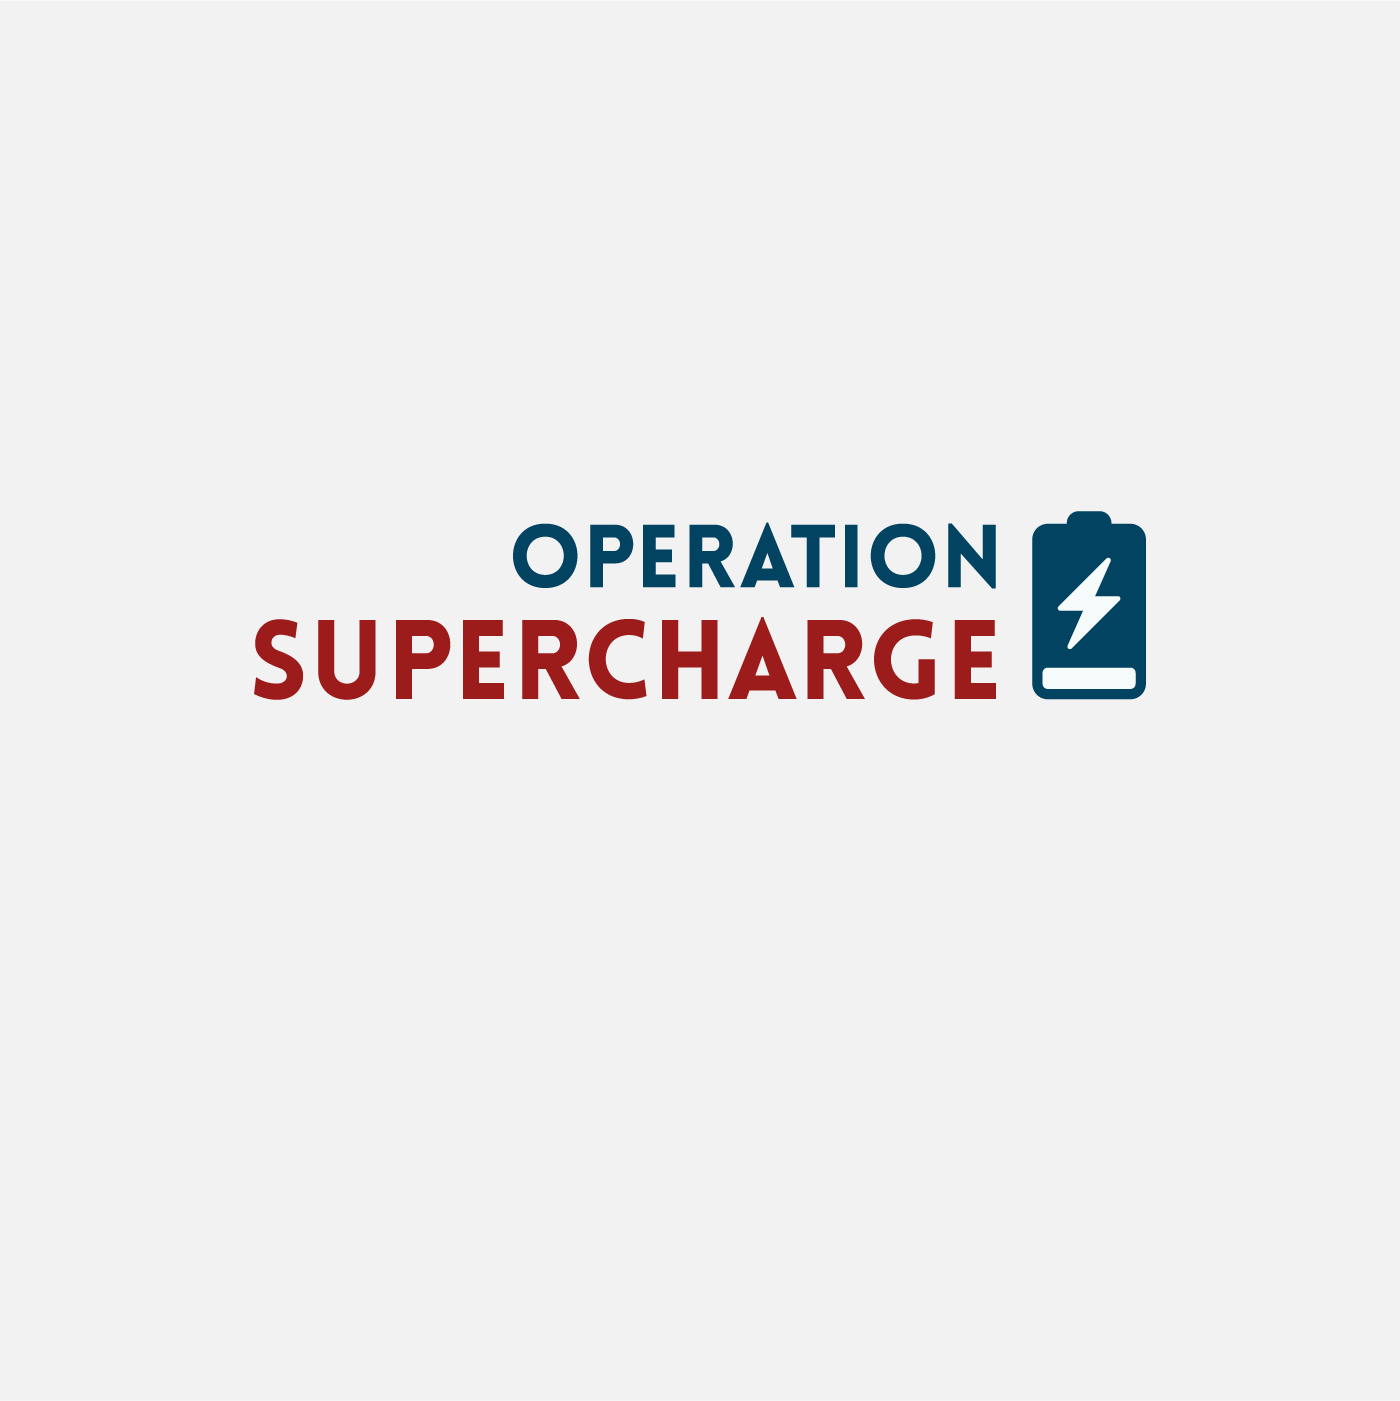 Operation Supercharge